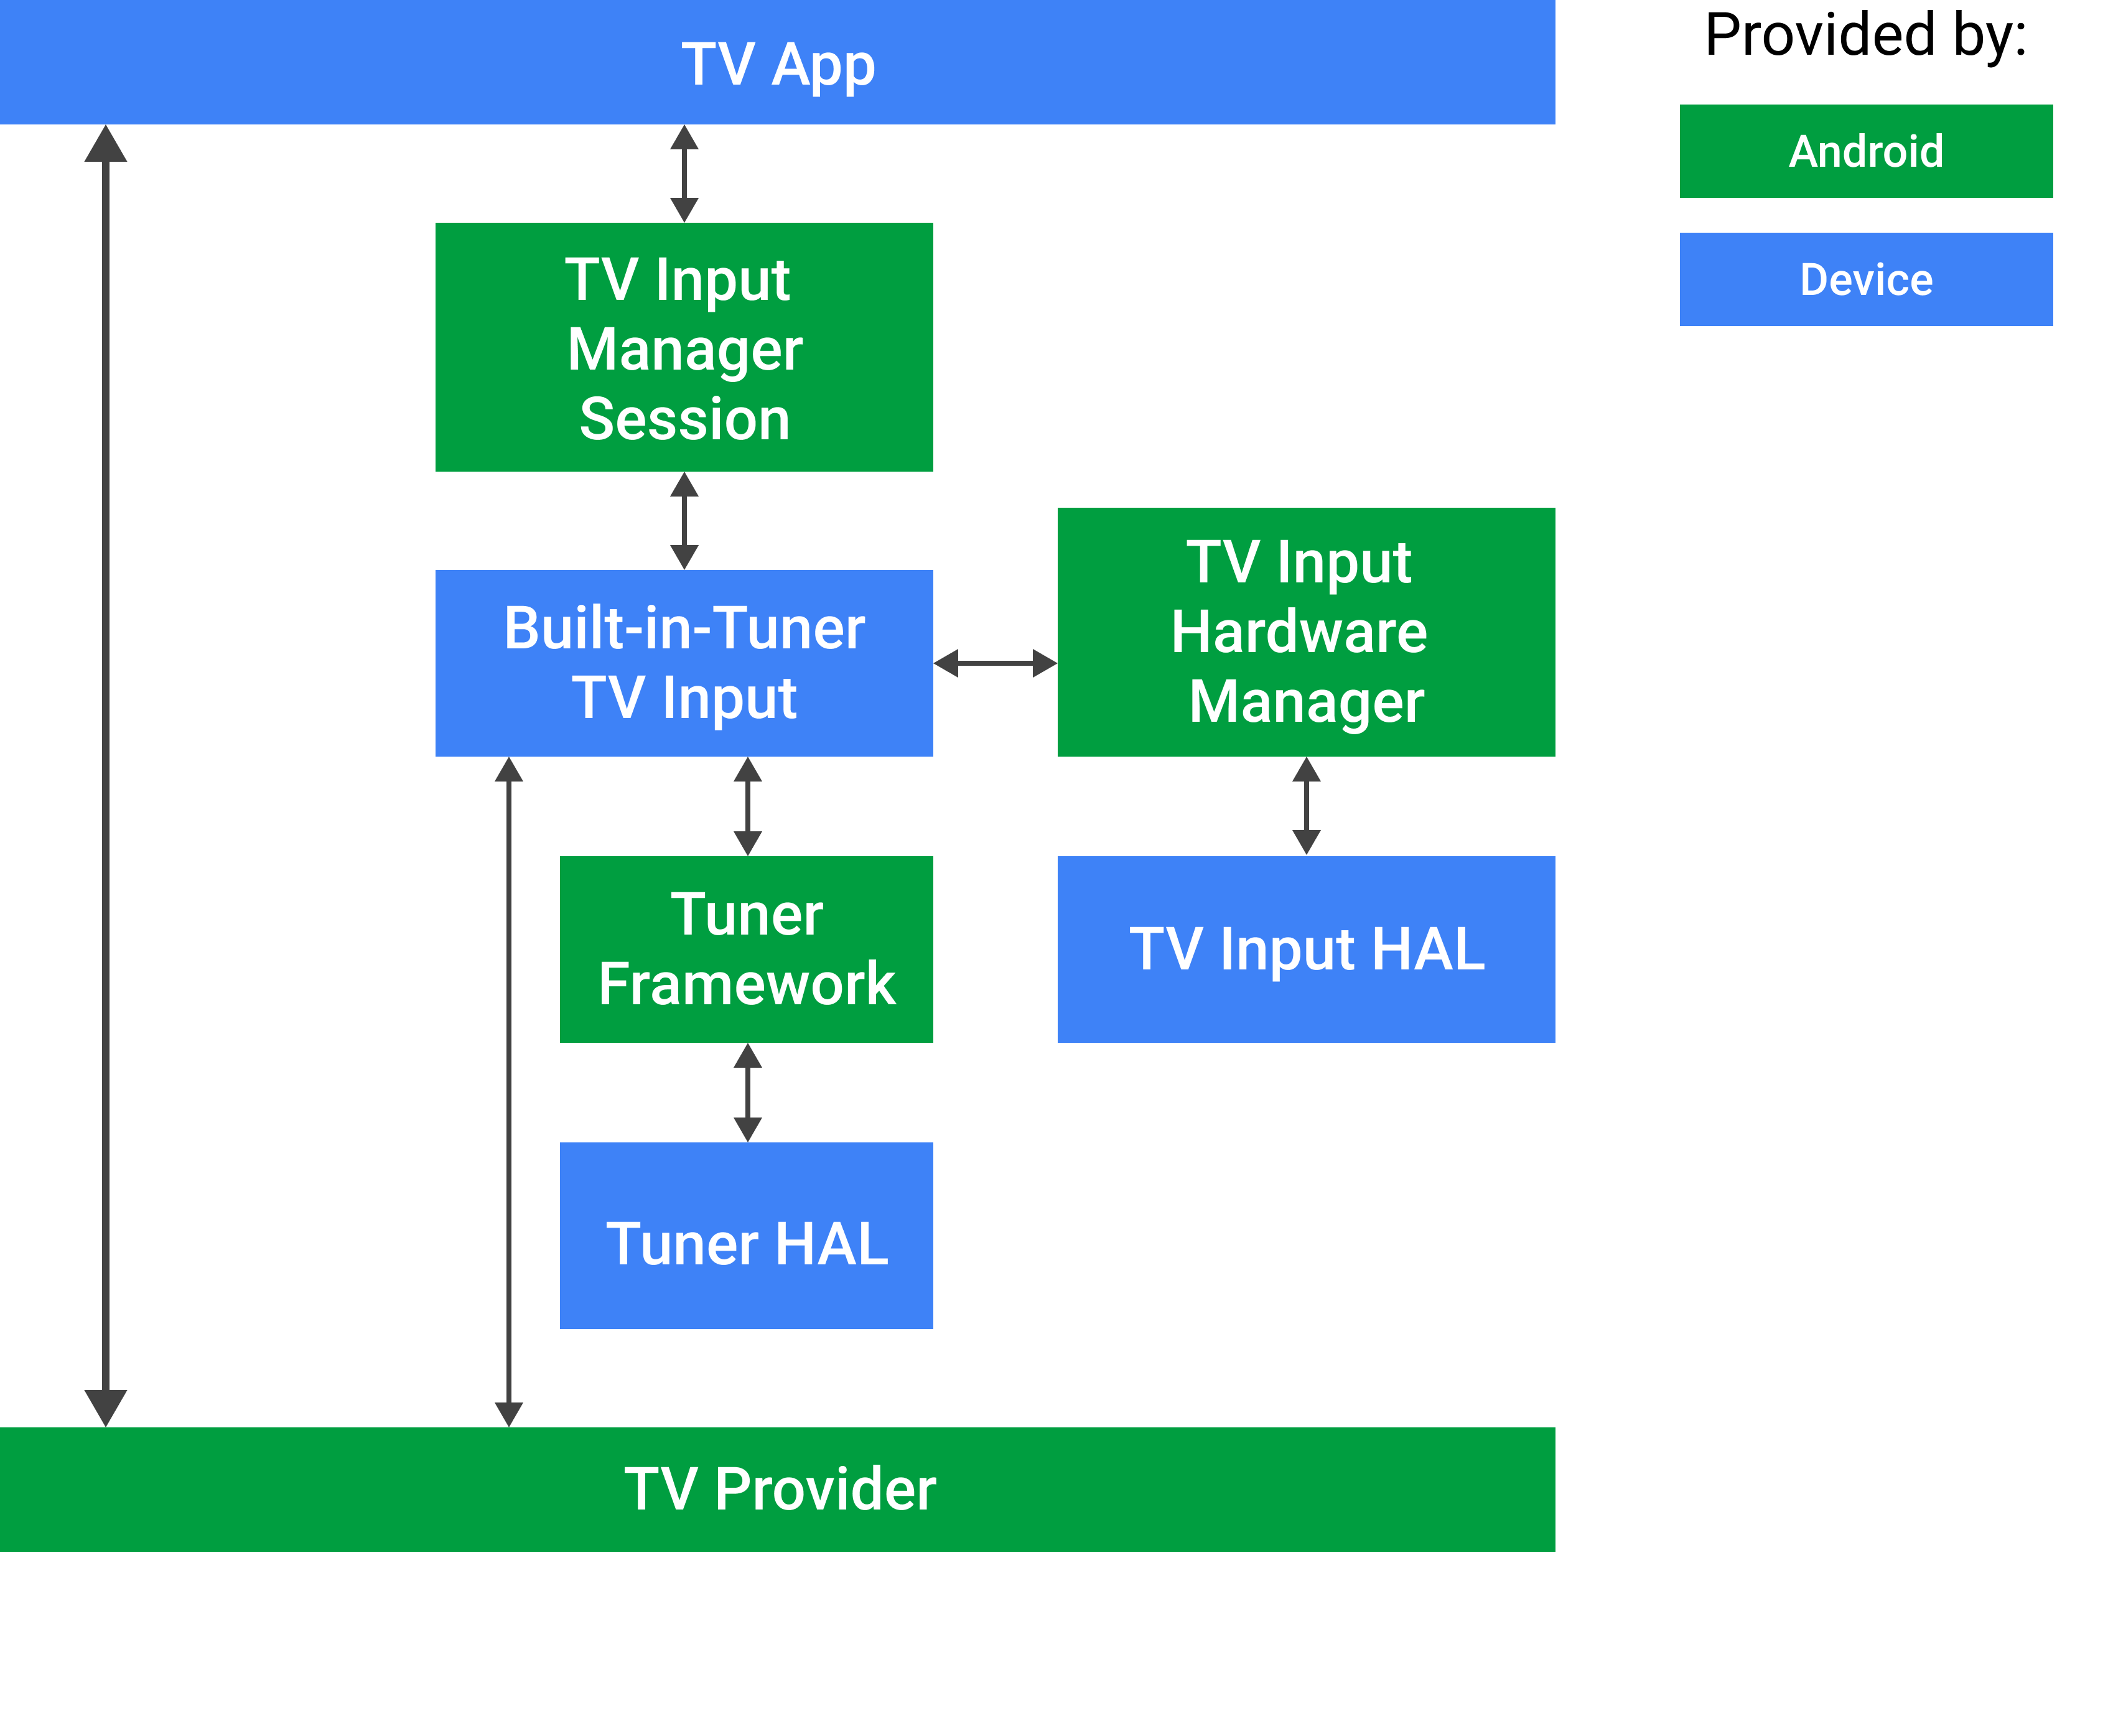 Android TV 내장 튜너 입력